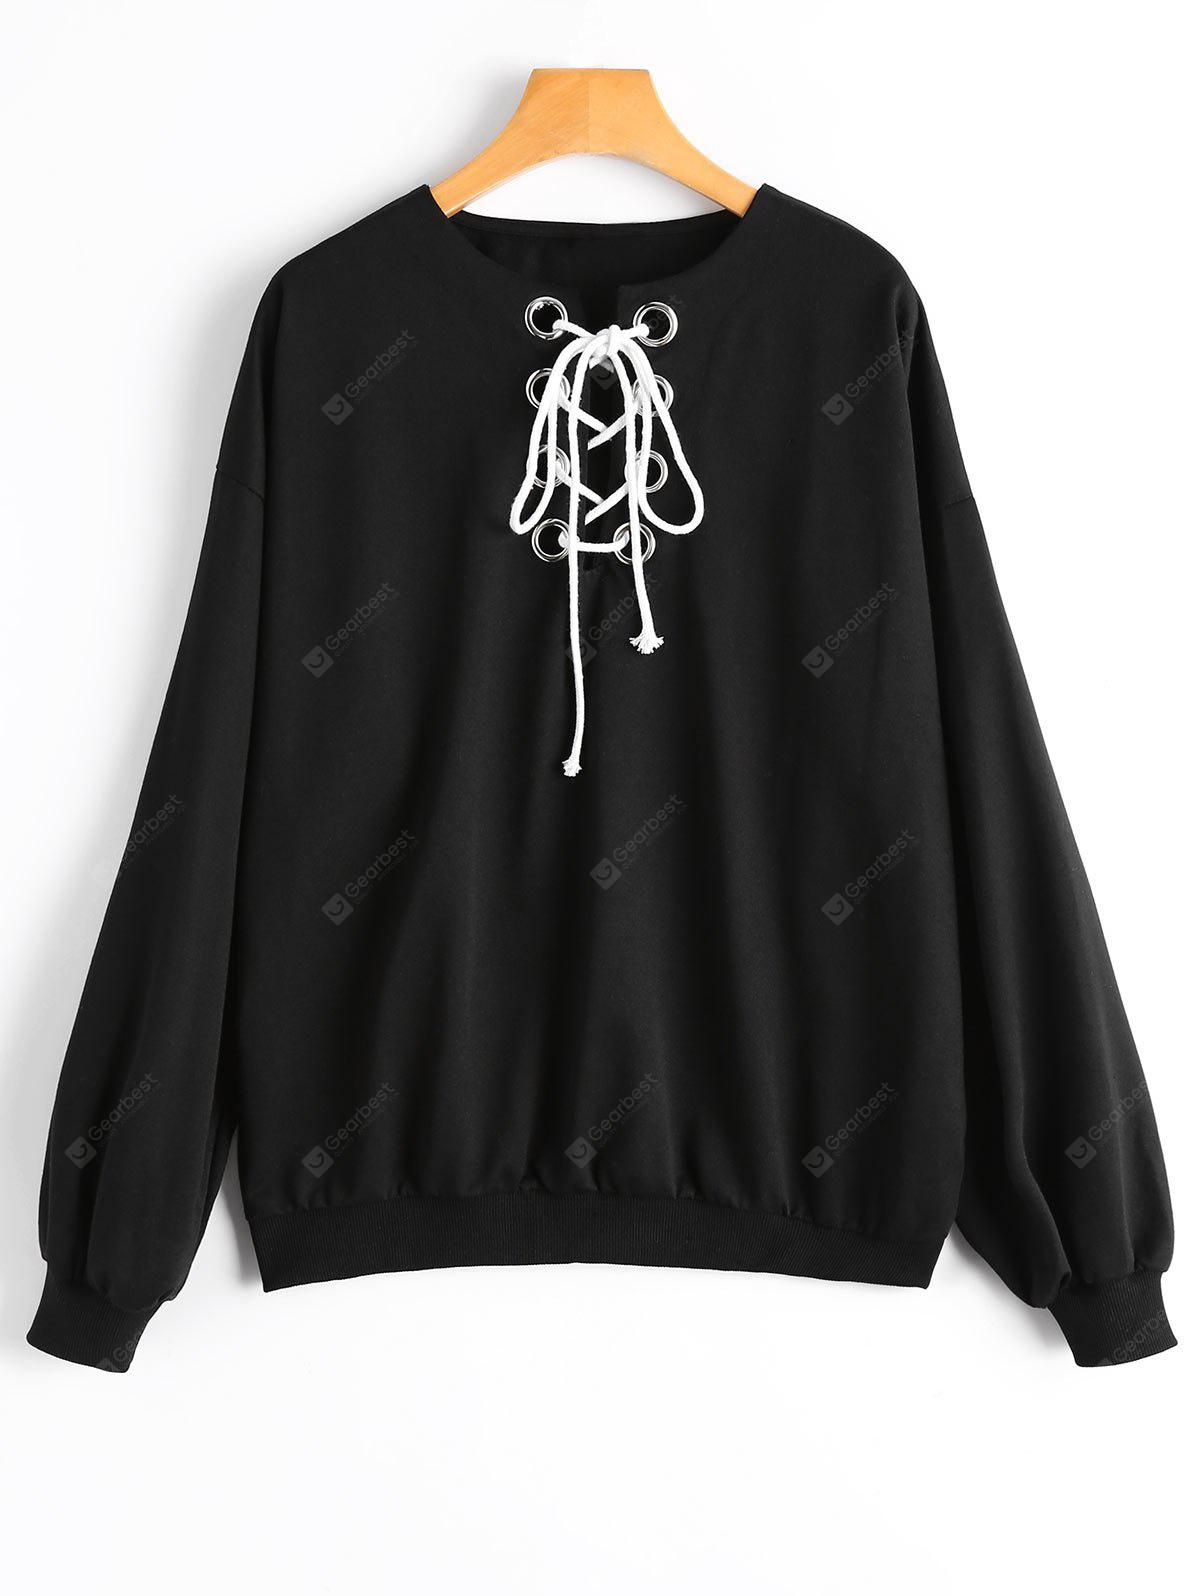 Round Collar Plain Lace Up Sweatshirt